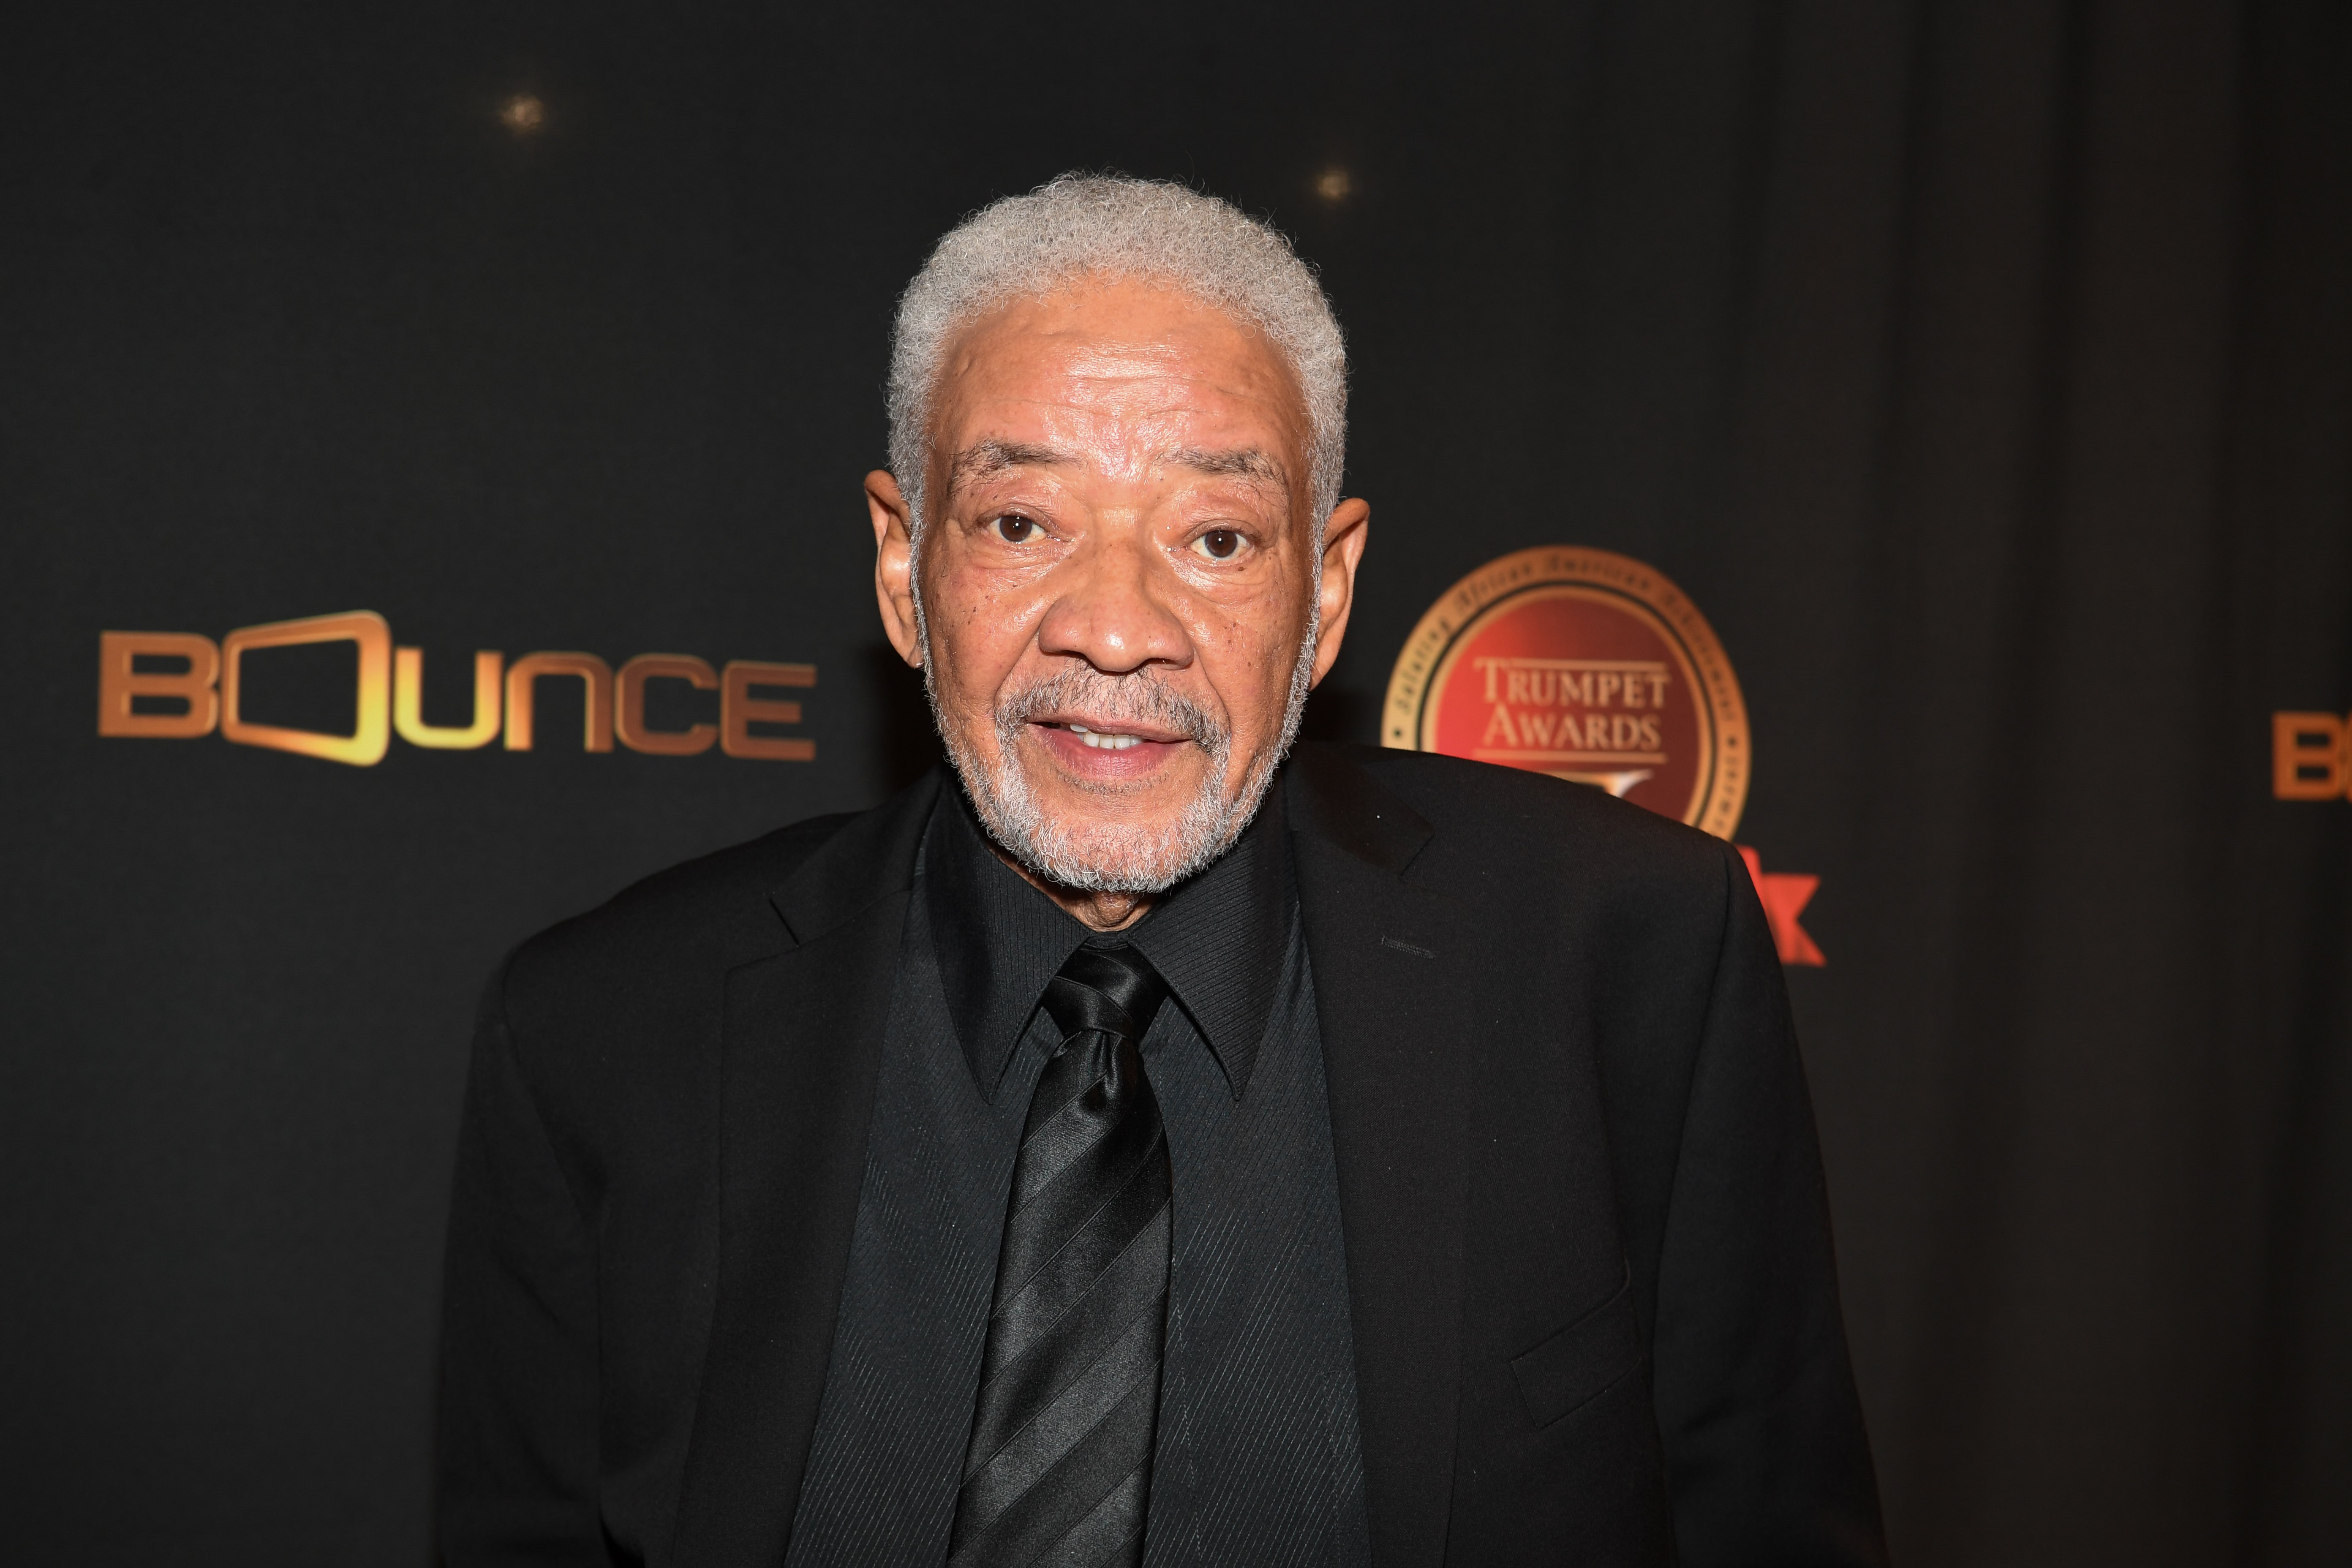 Musician Bill Withers at the 25th Annual Trumpet Awards at Cobb Energy Performing Arts Center in Atlanta, Georgia | Photo: Paras Griffin/Getty Images